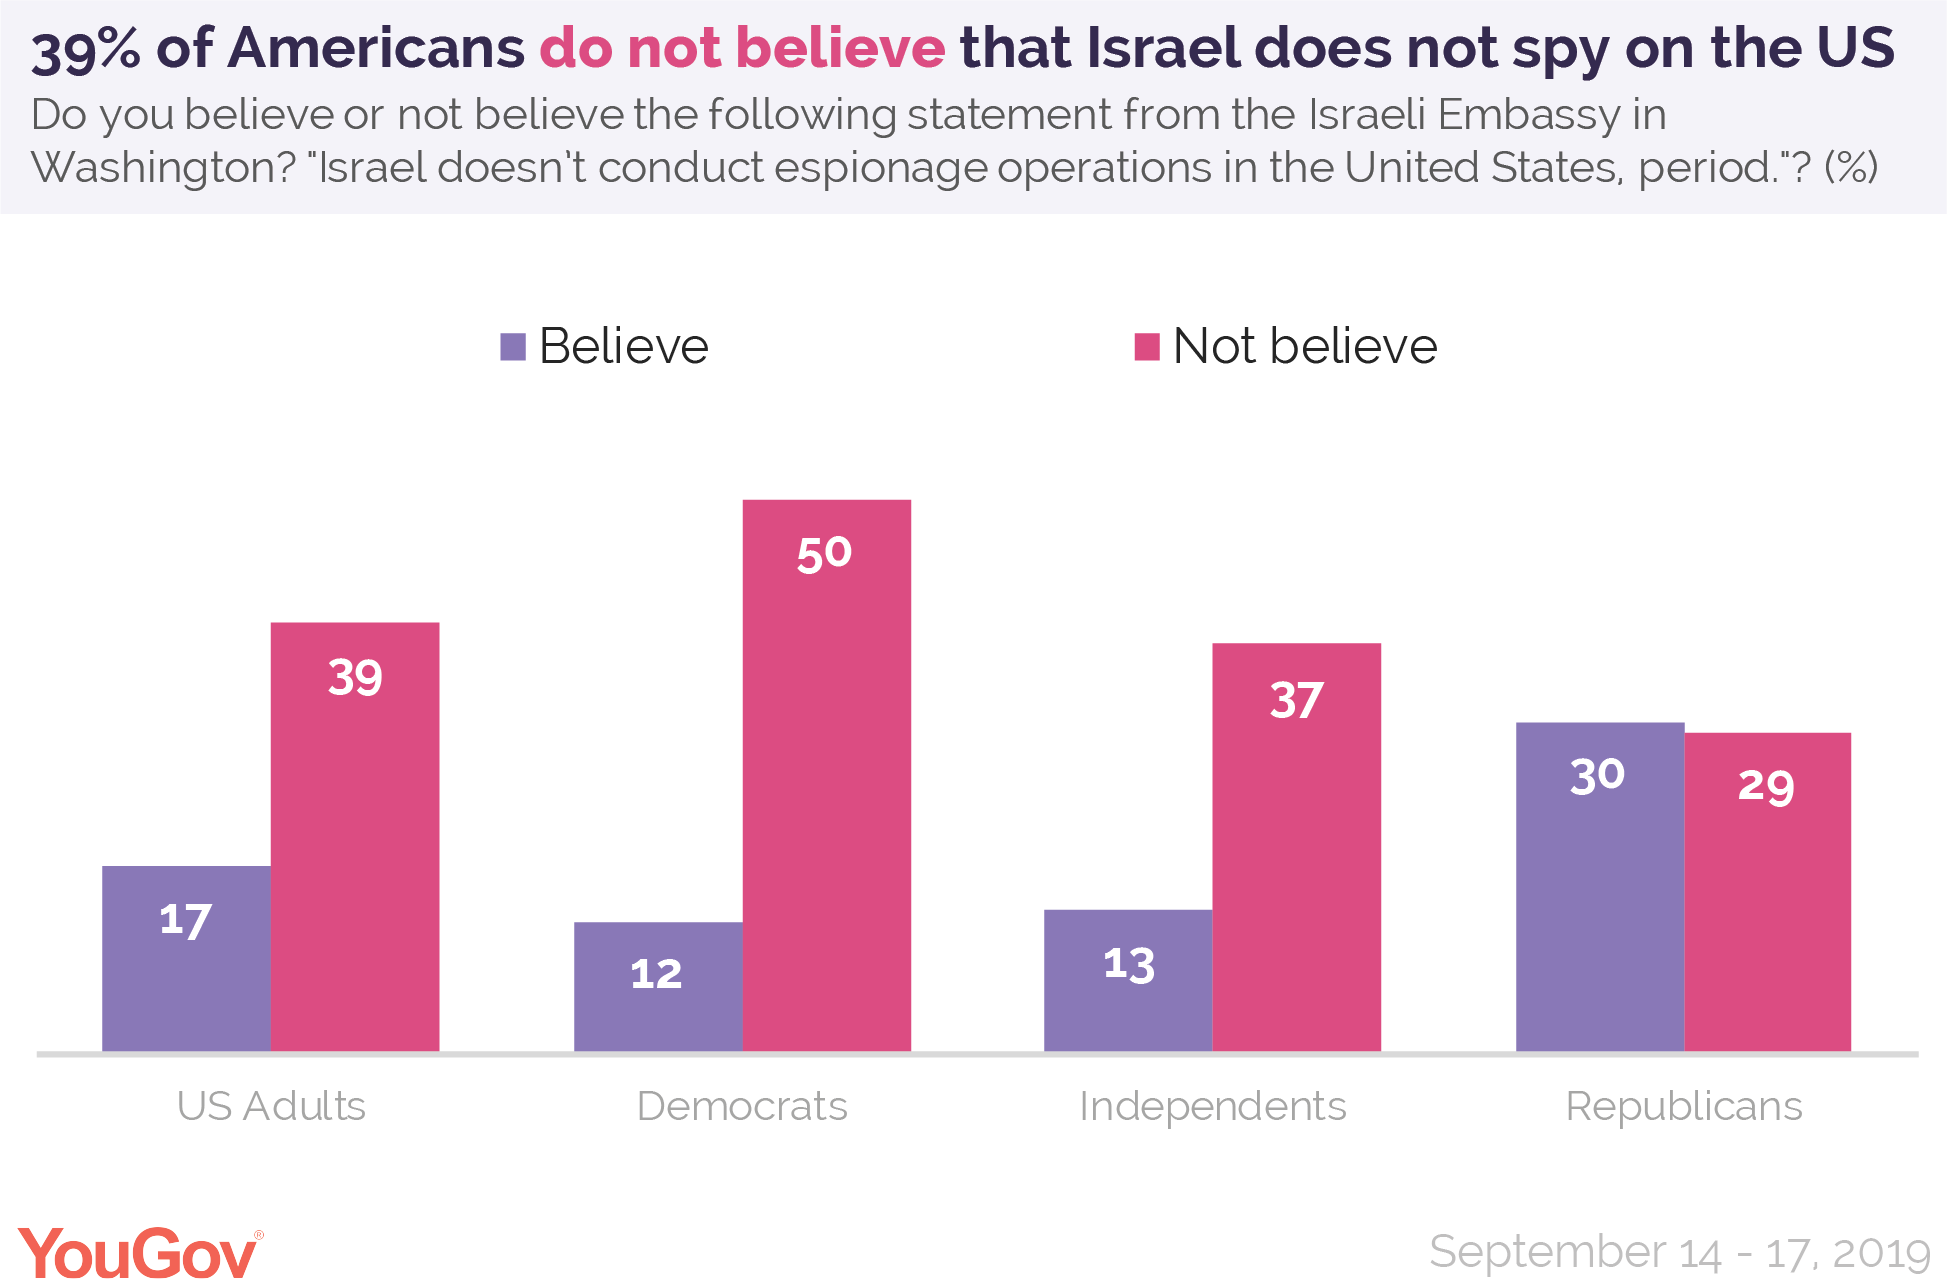 39% of Americans do not believe that Israel does not spy on the United States